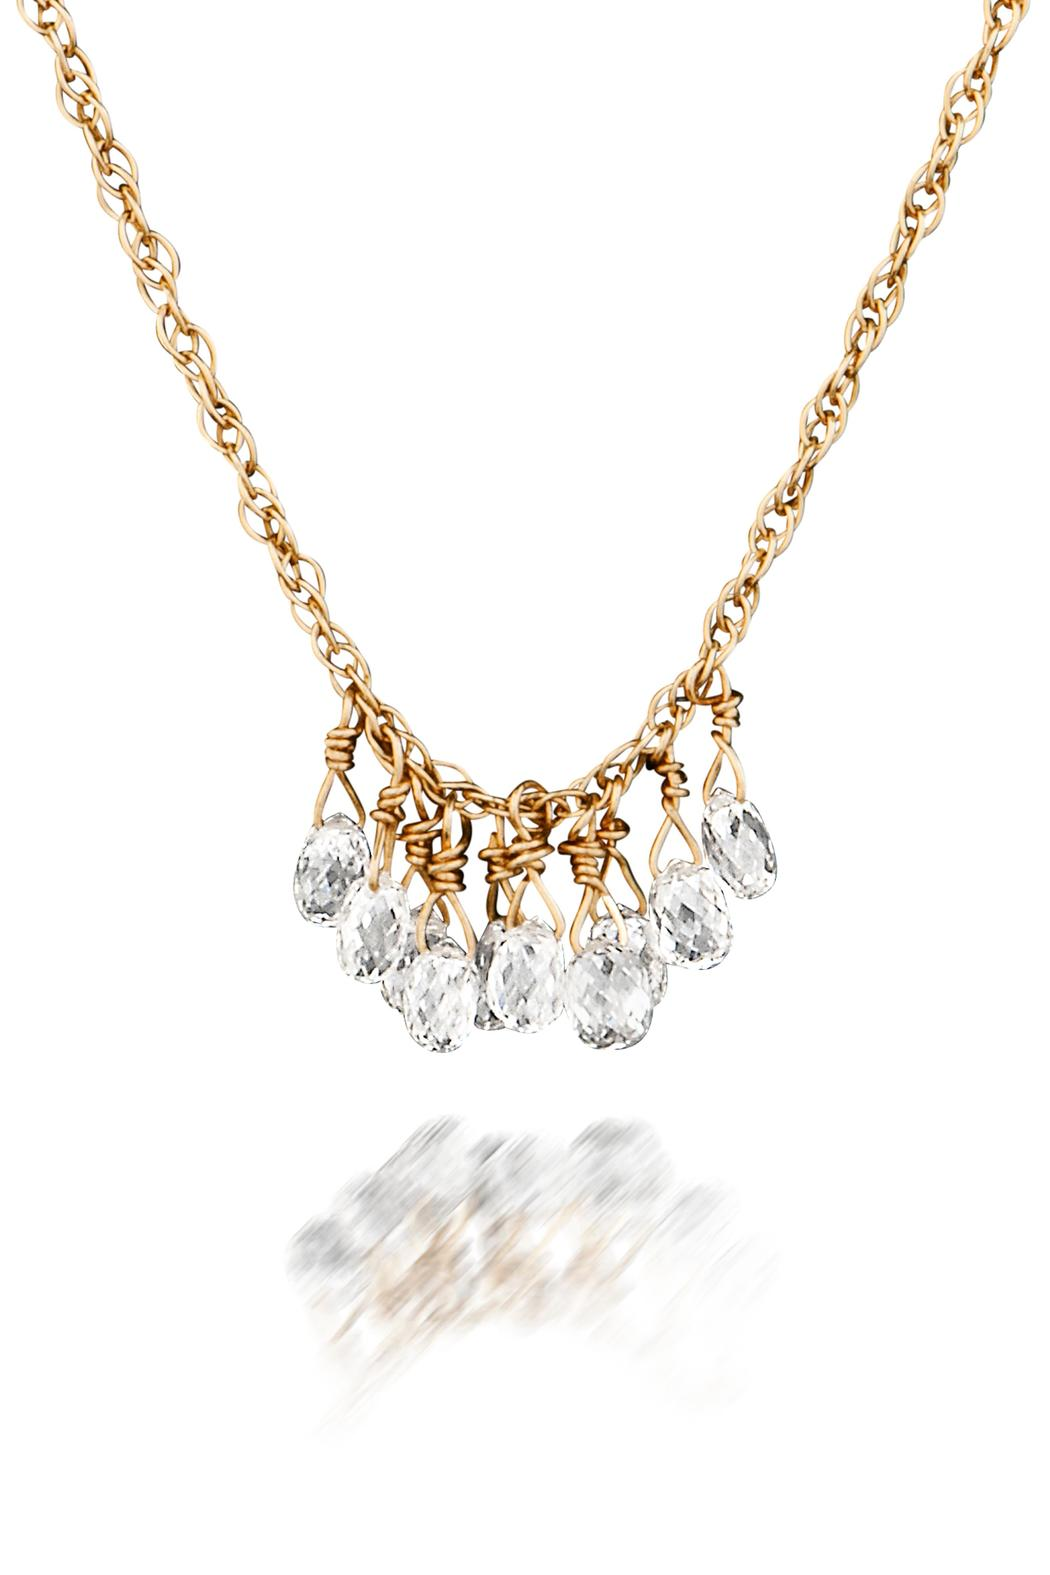 single briomd quercus briolette necklaces n raleigh necklace diamond lr